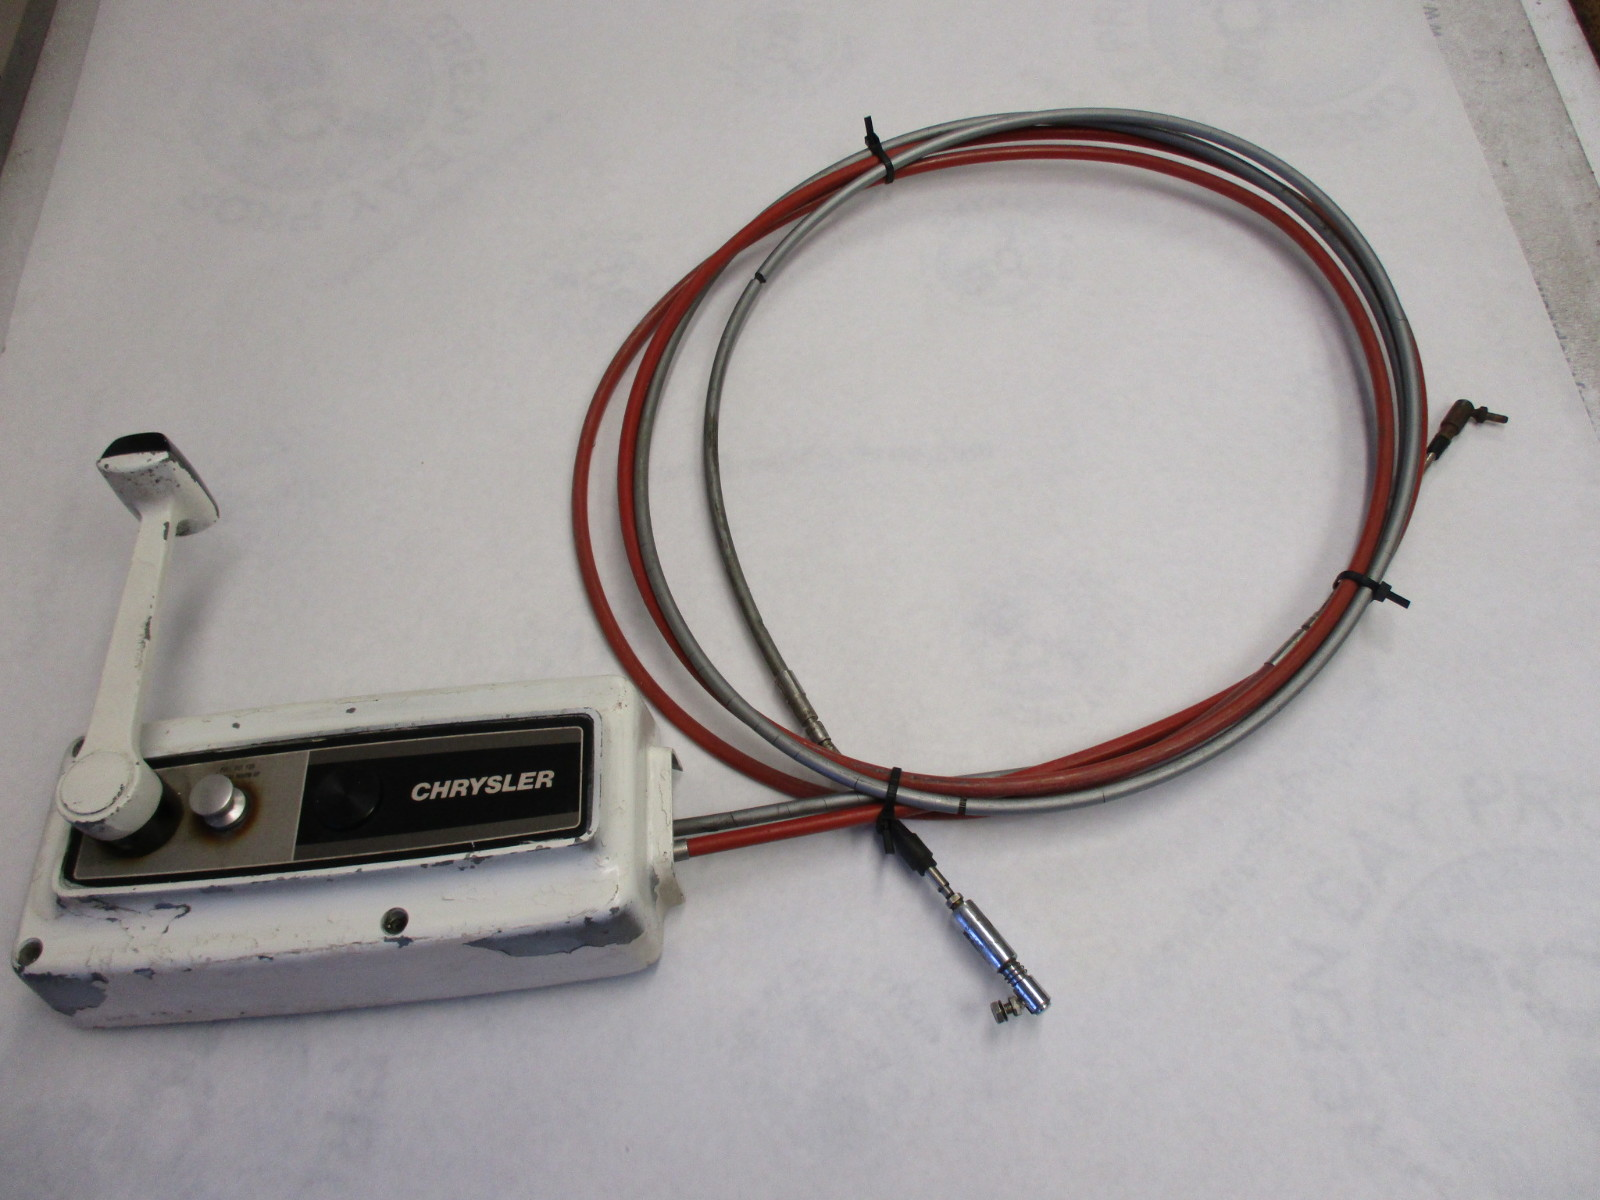 force chrysler outboard 10 ft cables remote control box | green bay  propeller & marine llc